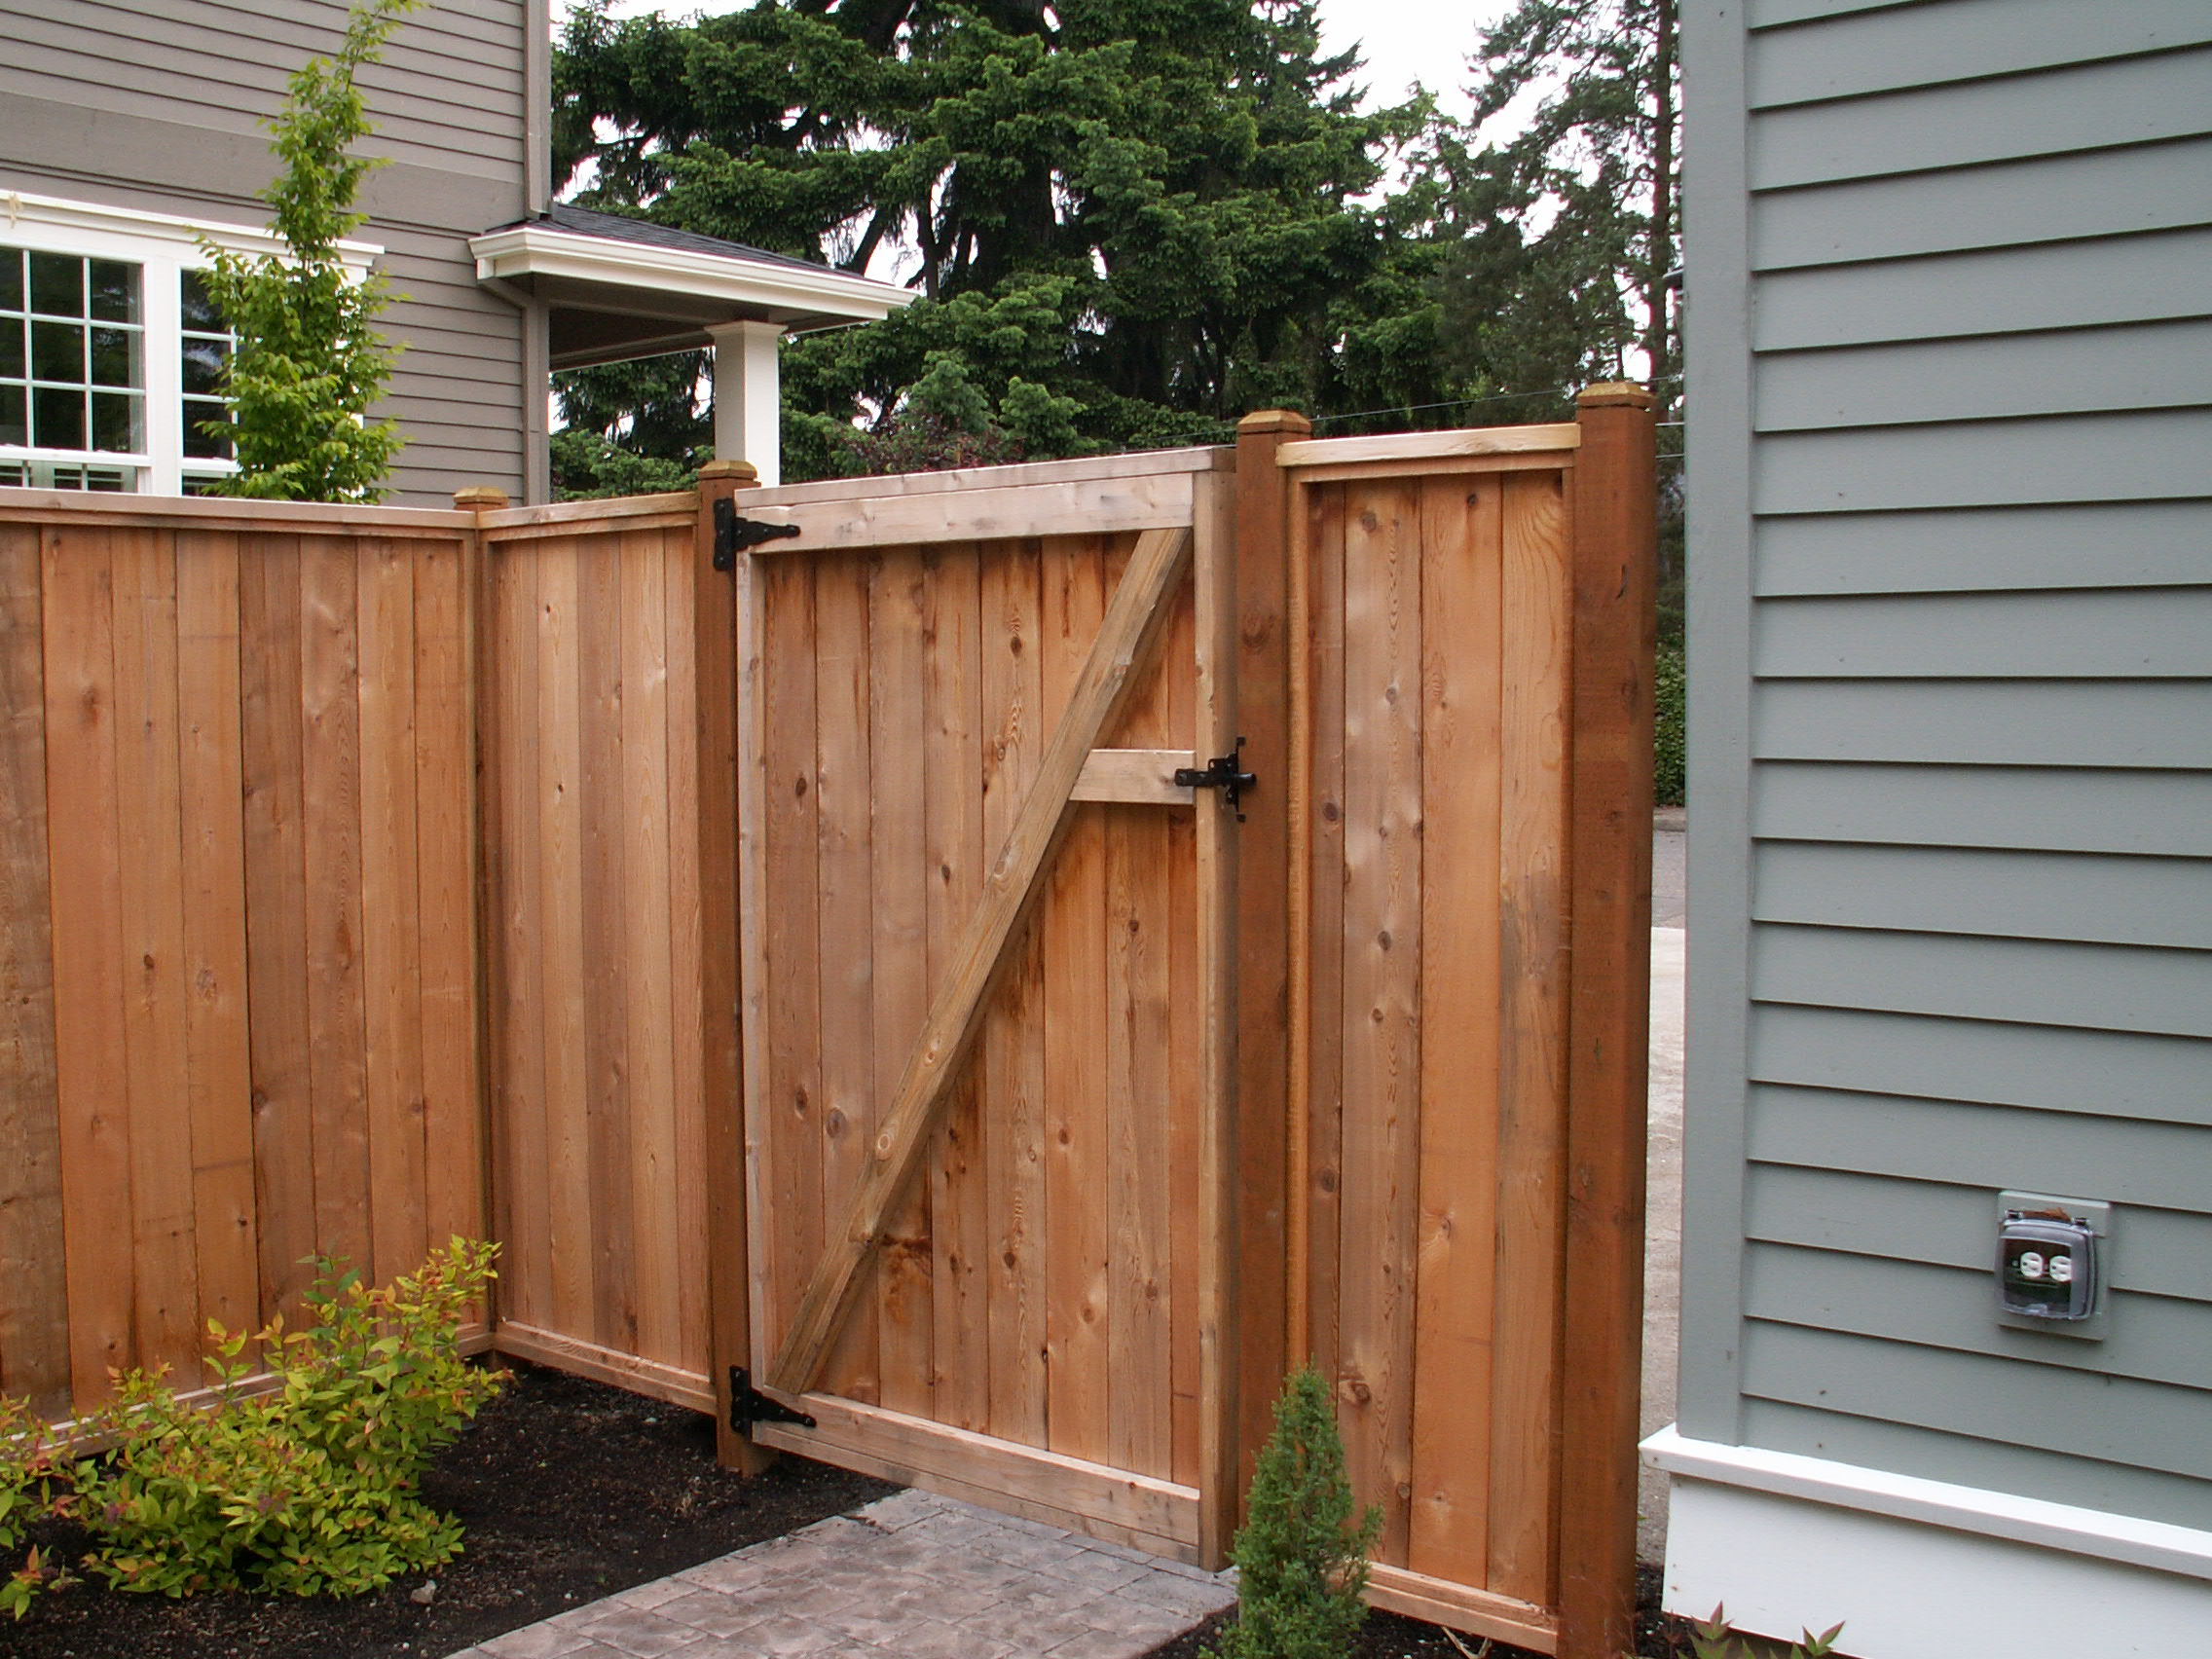 Pictures Of Wood Fences And Gates Fences Ideas in measurements 2272 X 1704